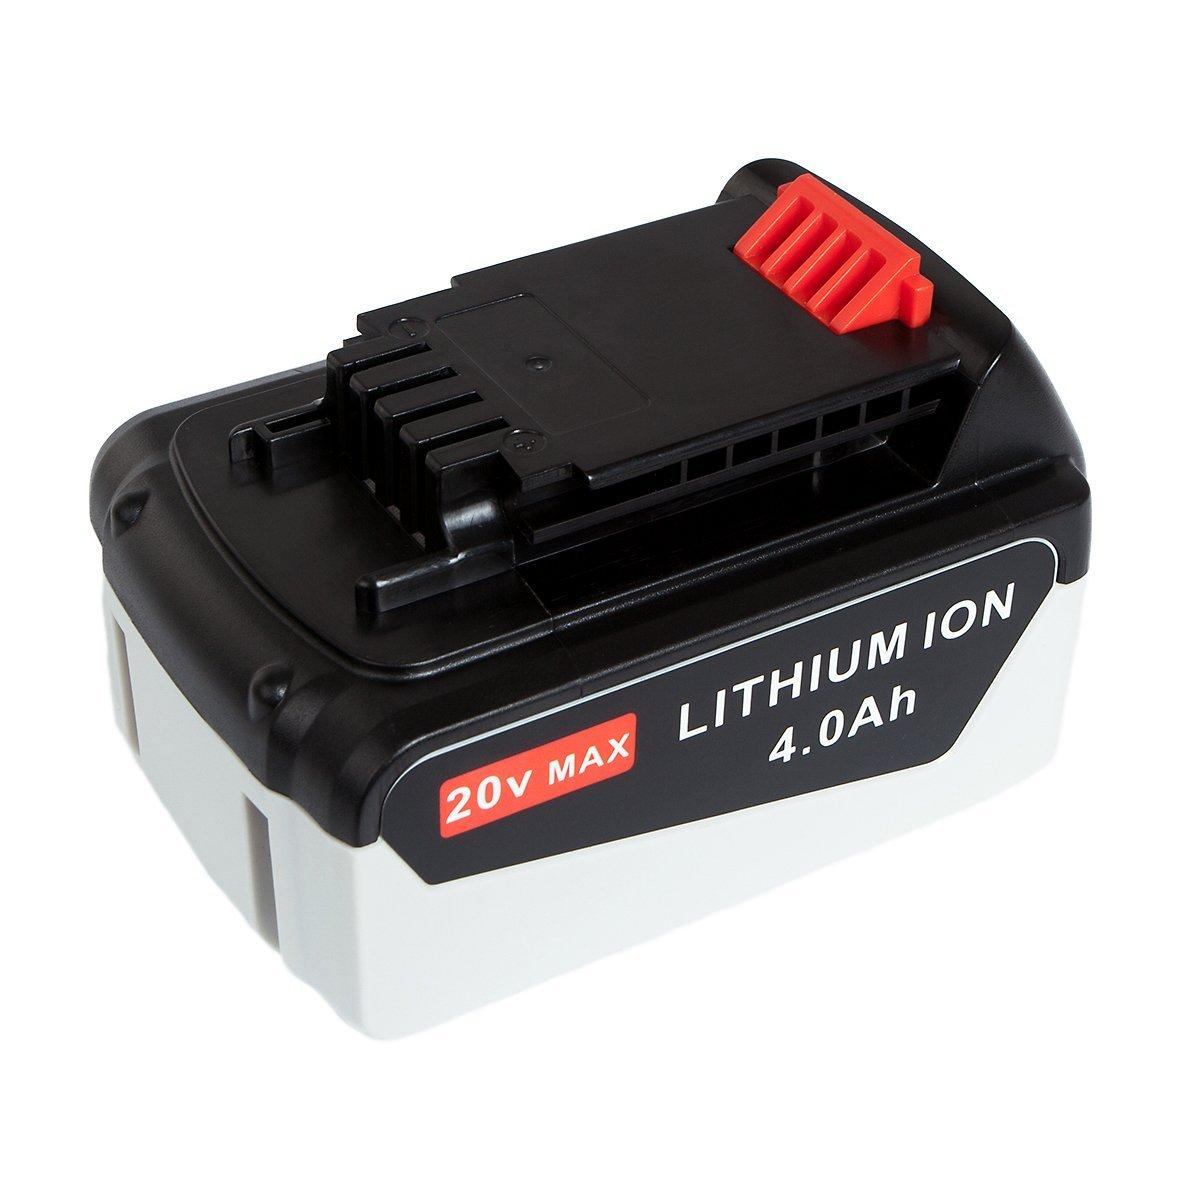 4.0Ah High Capacity 20V MAX Battery for Black & Decker LBXR20 LBXR20-OPE LB20 LBX20 LB2X4020 LB2X4020-OPE